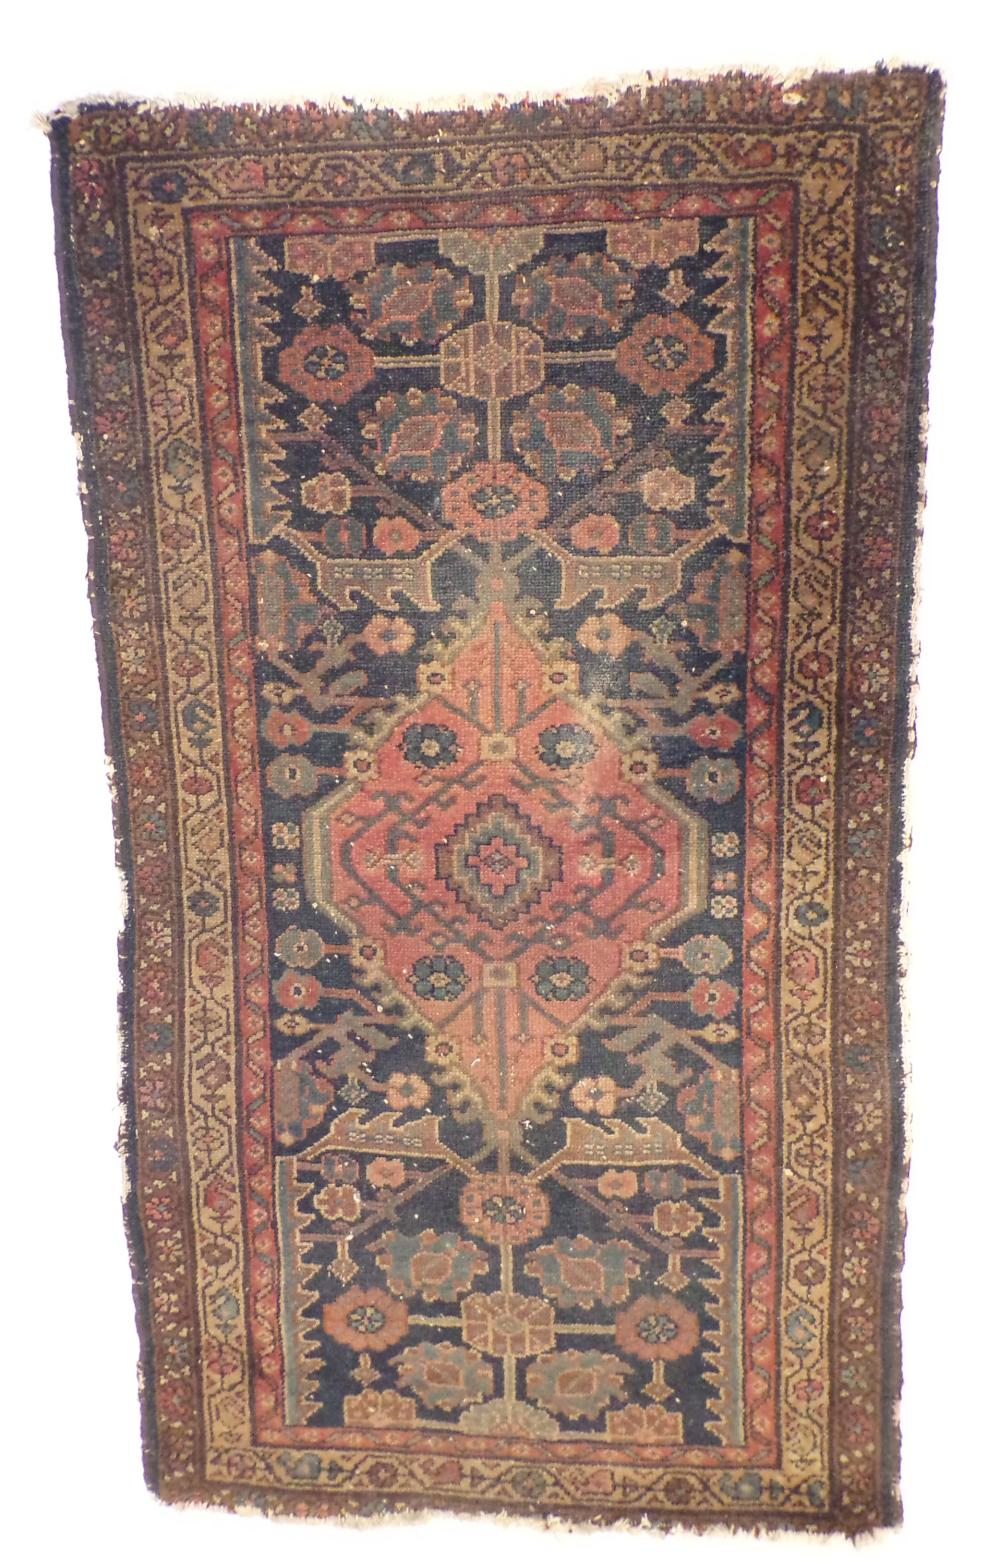 Antique Oriental area rug